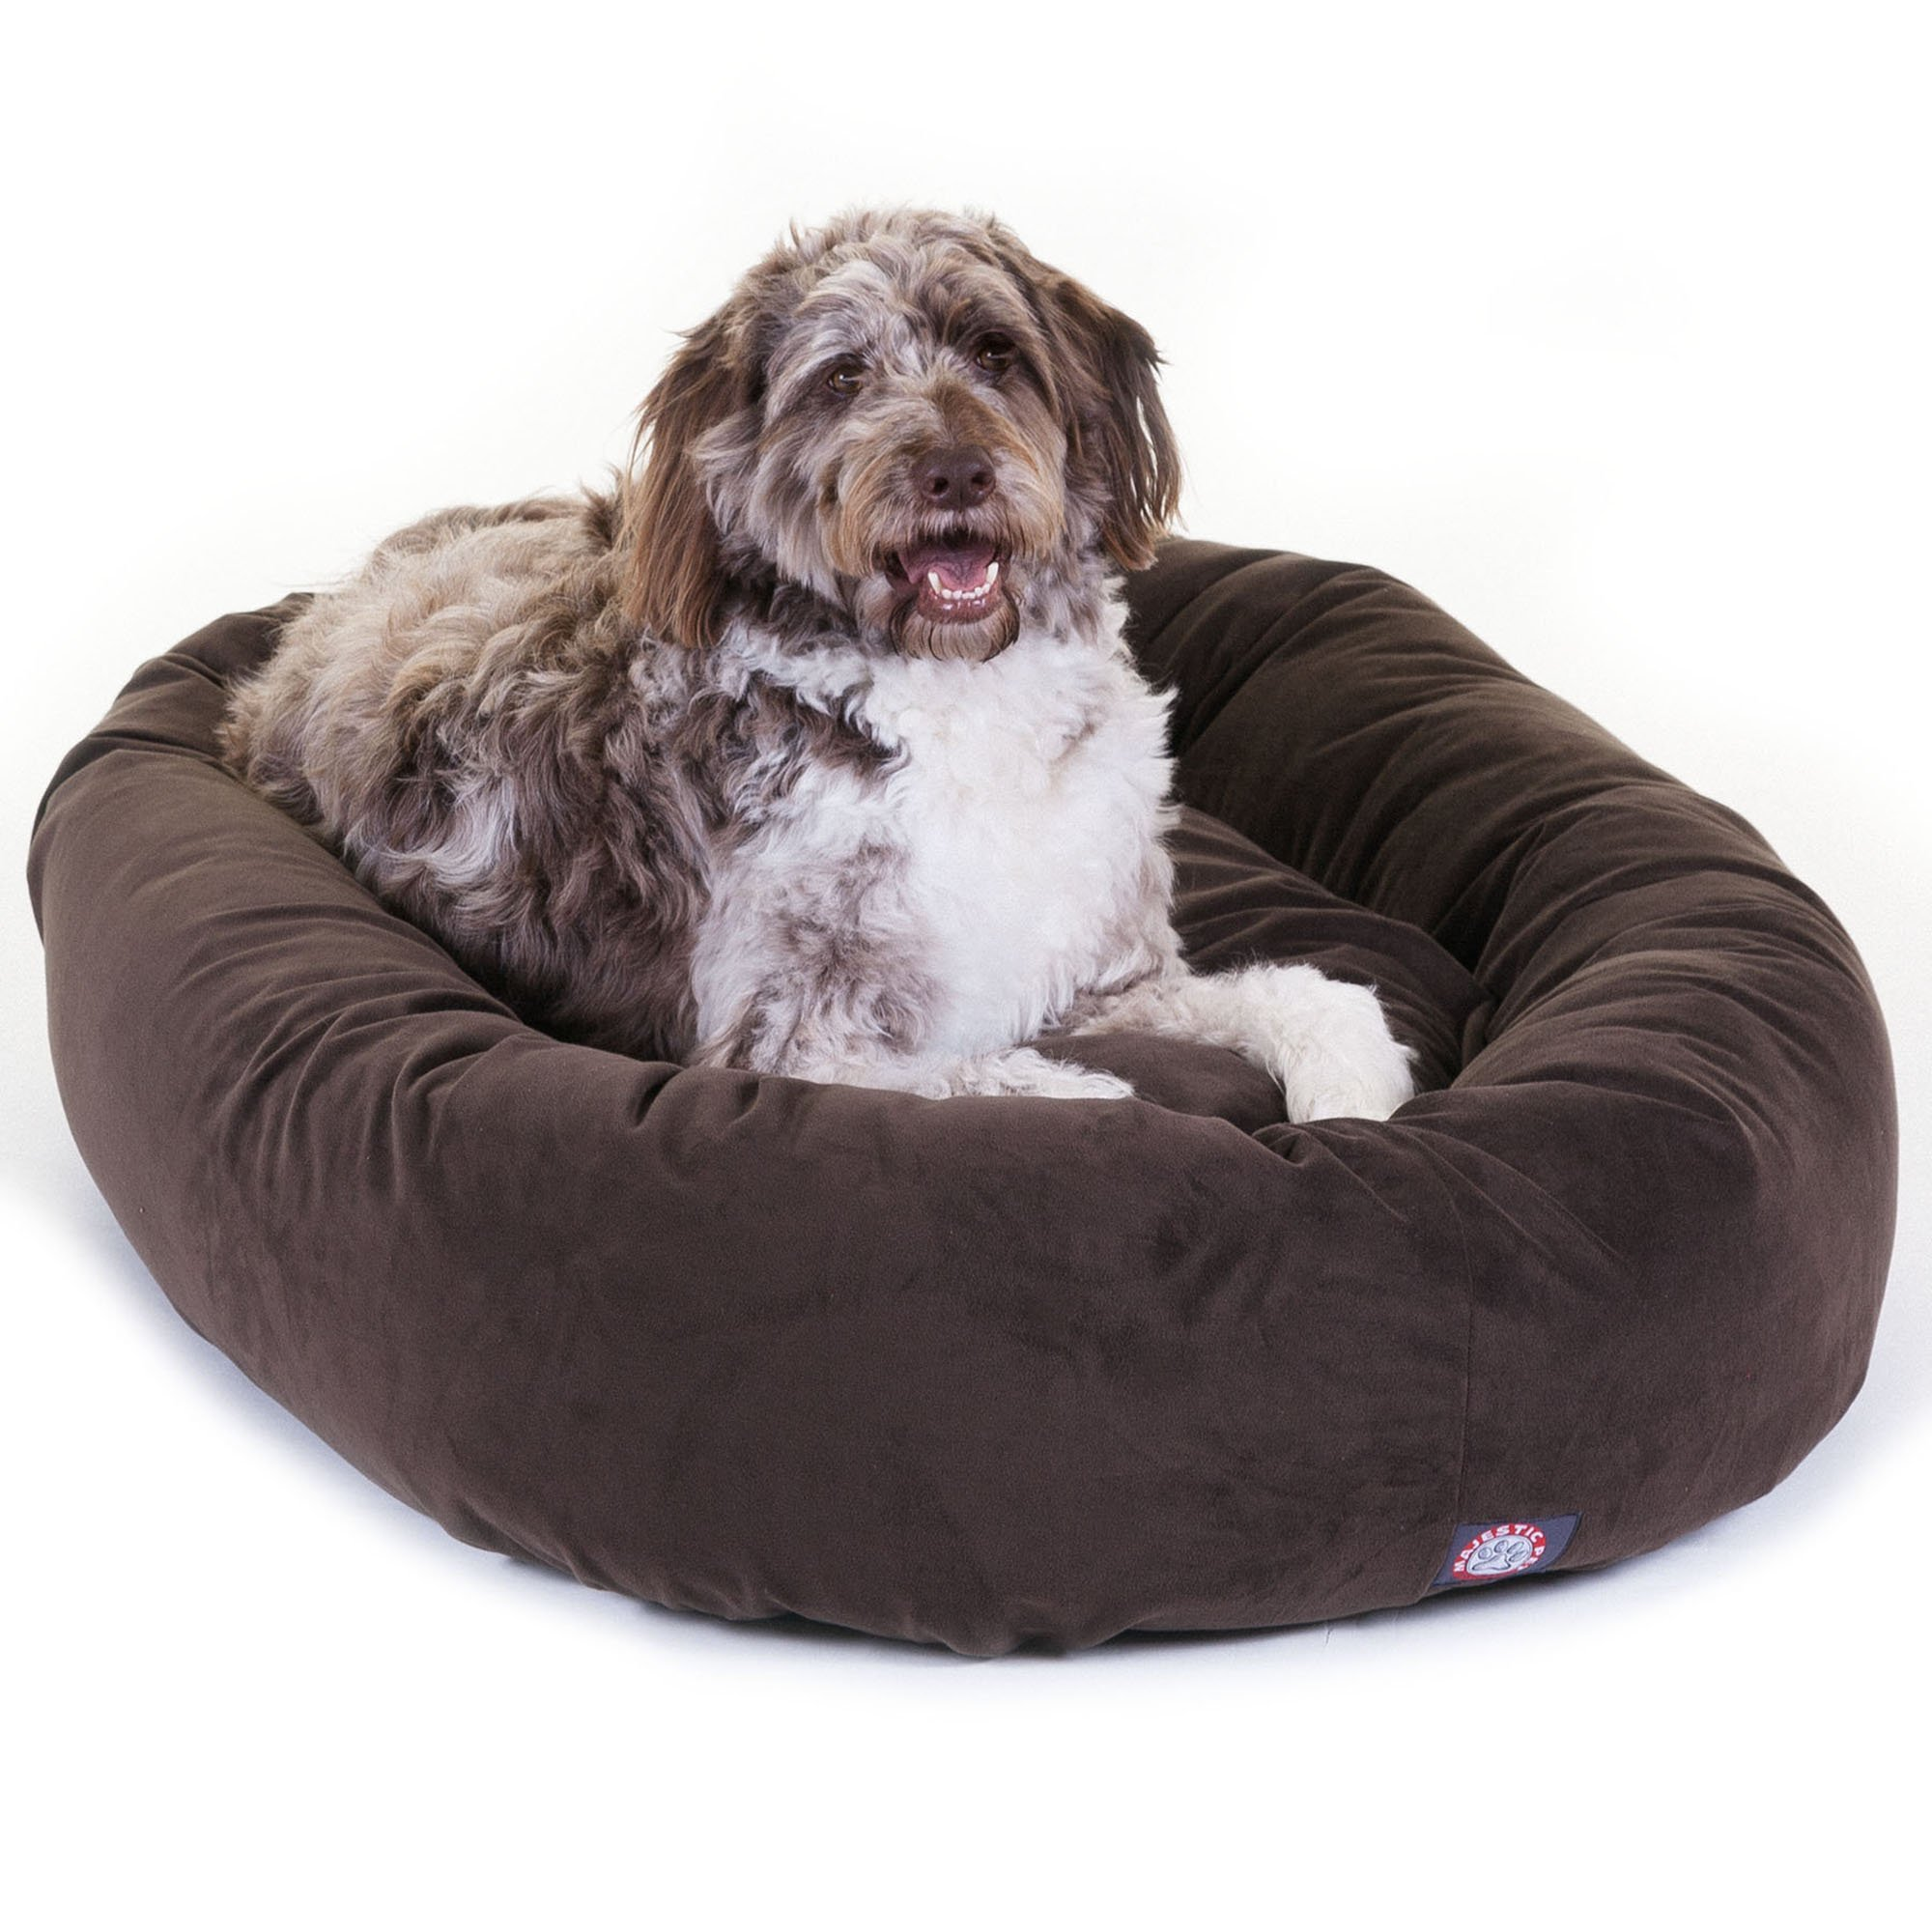 Majestic Pet 40 inch Chocolate Suede Bagel Dog Bed By Products by Majestic Pet (Image #1)